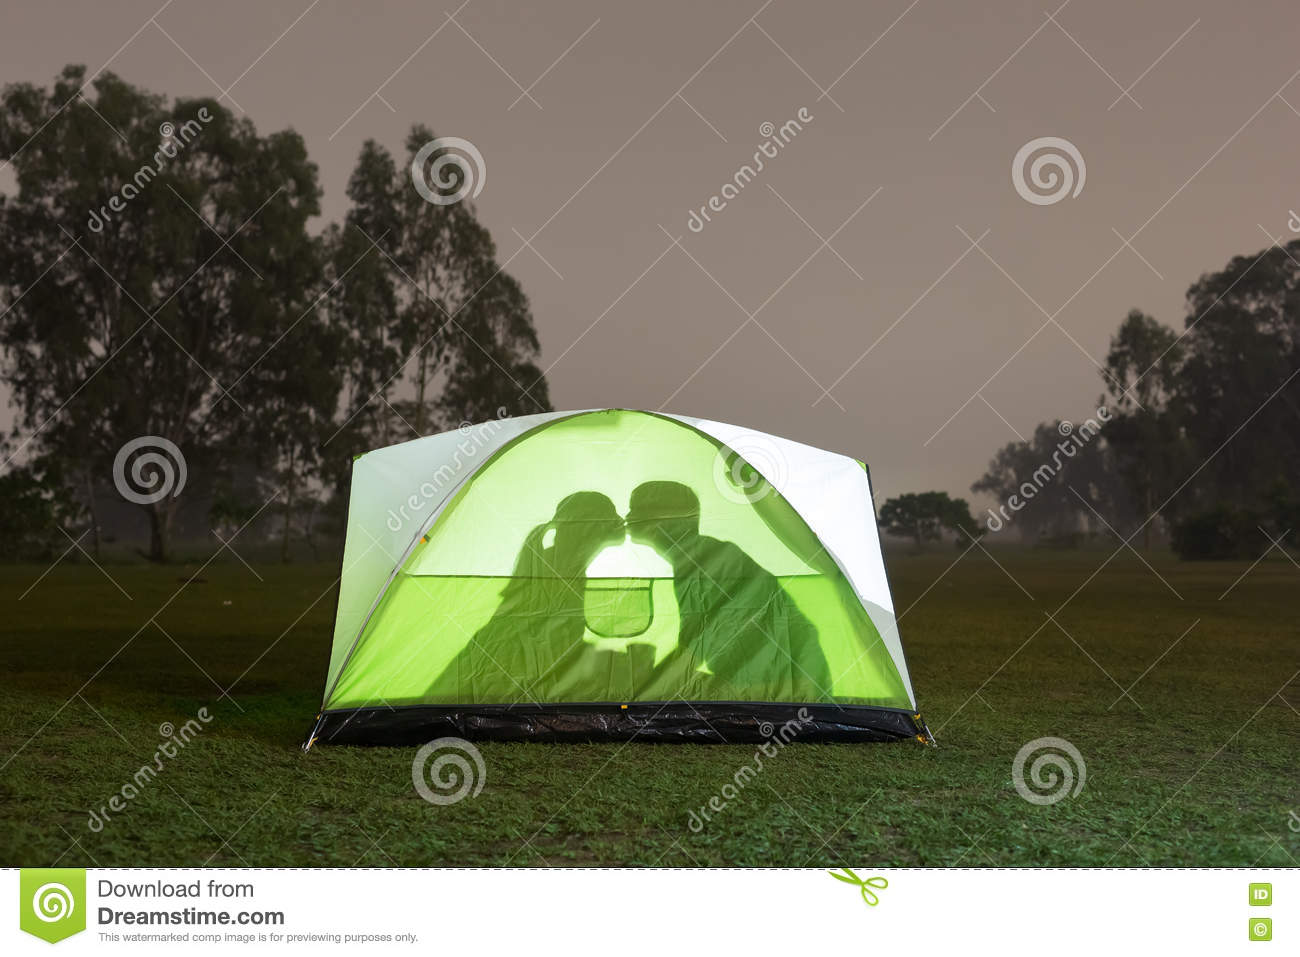 Silhouette Of Couple Camping Stock Image - Image: 80108777